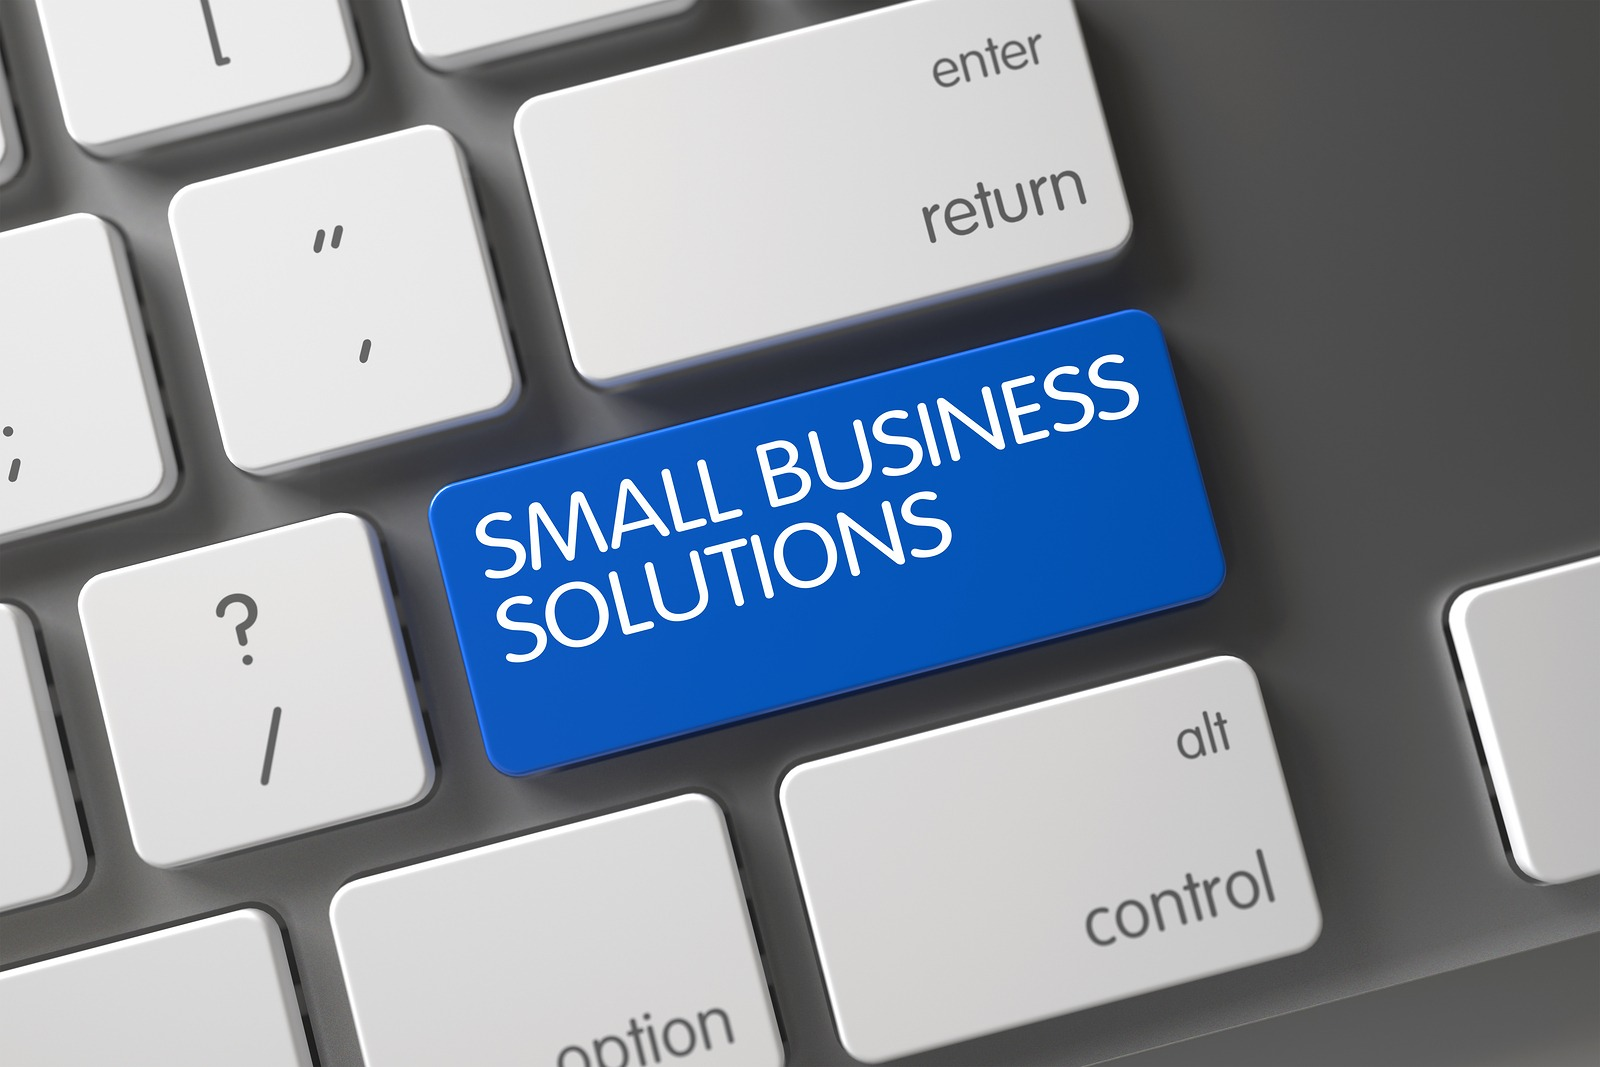 Need Small Business Funding? Consider Your Options Carefully